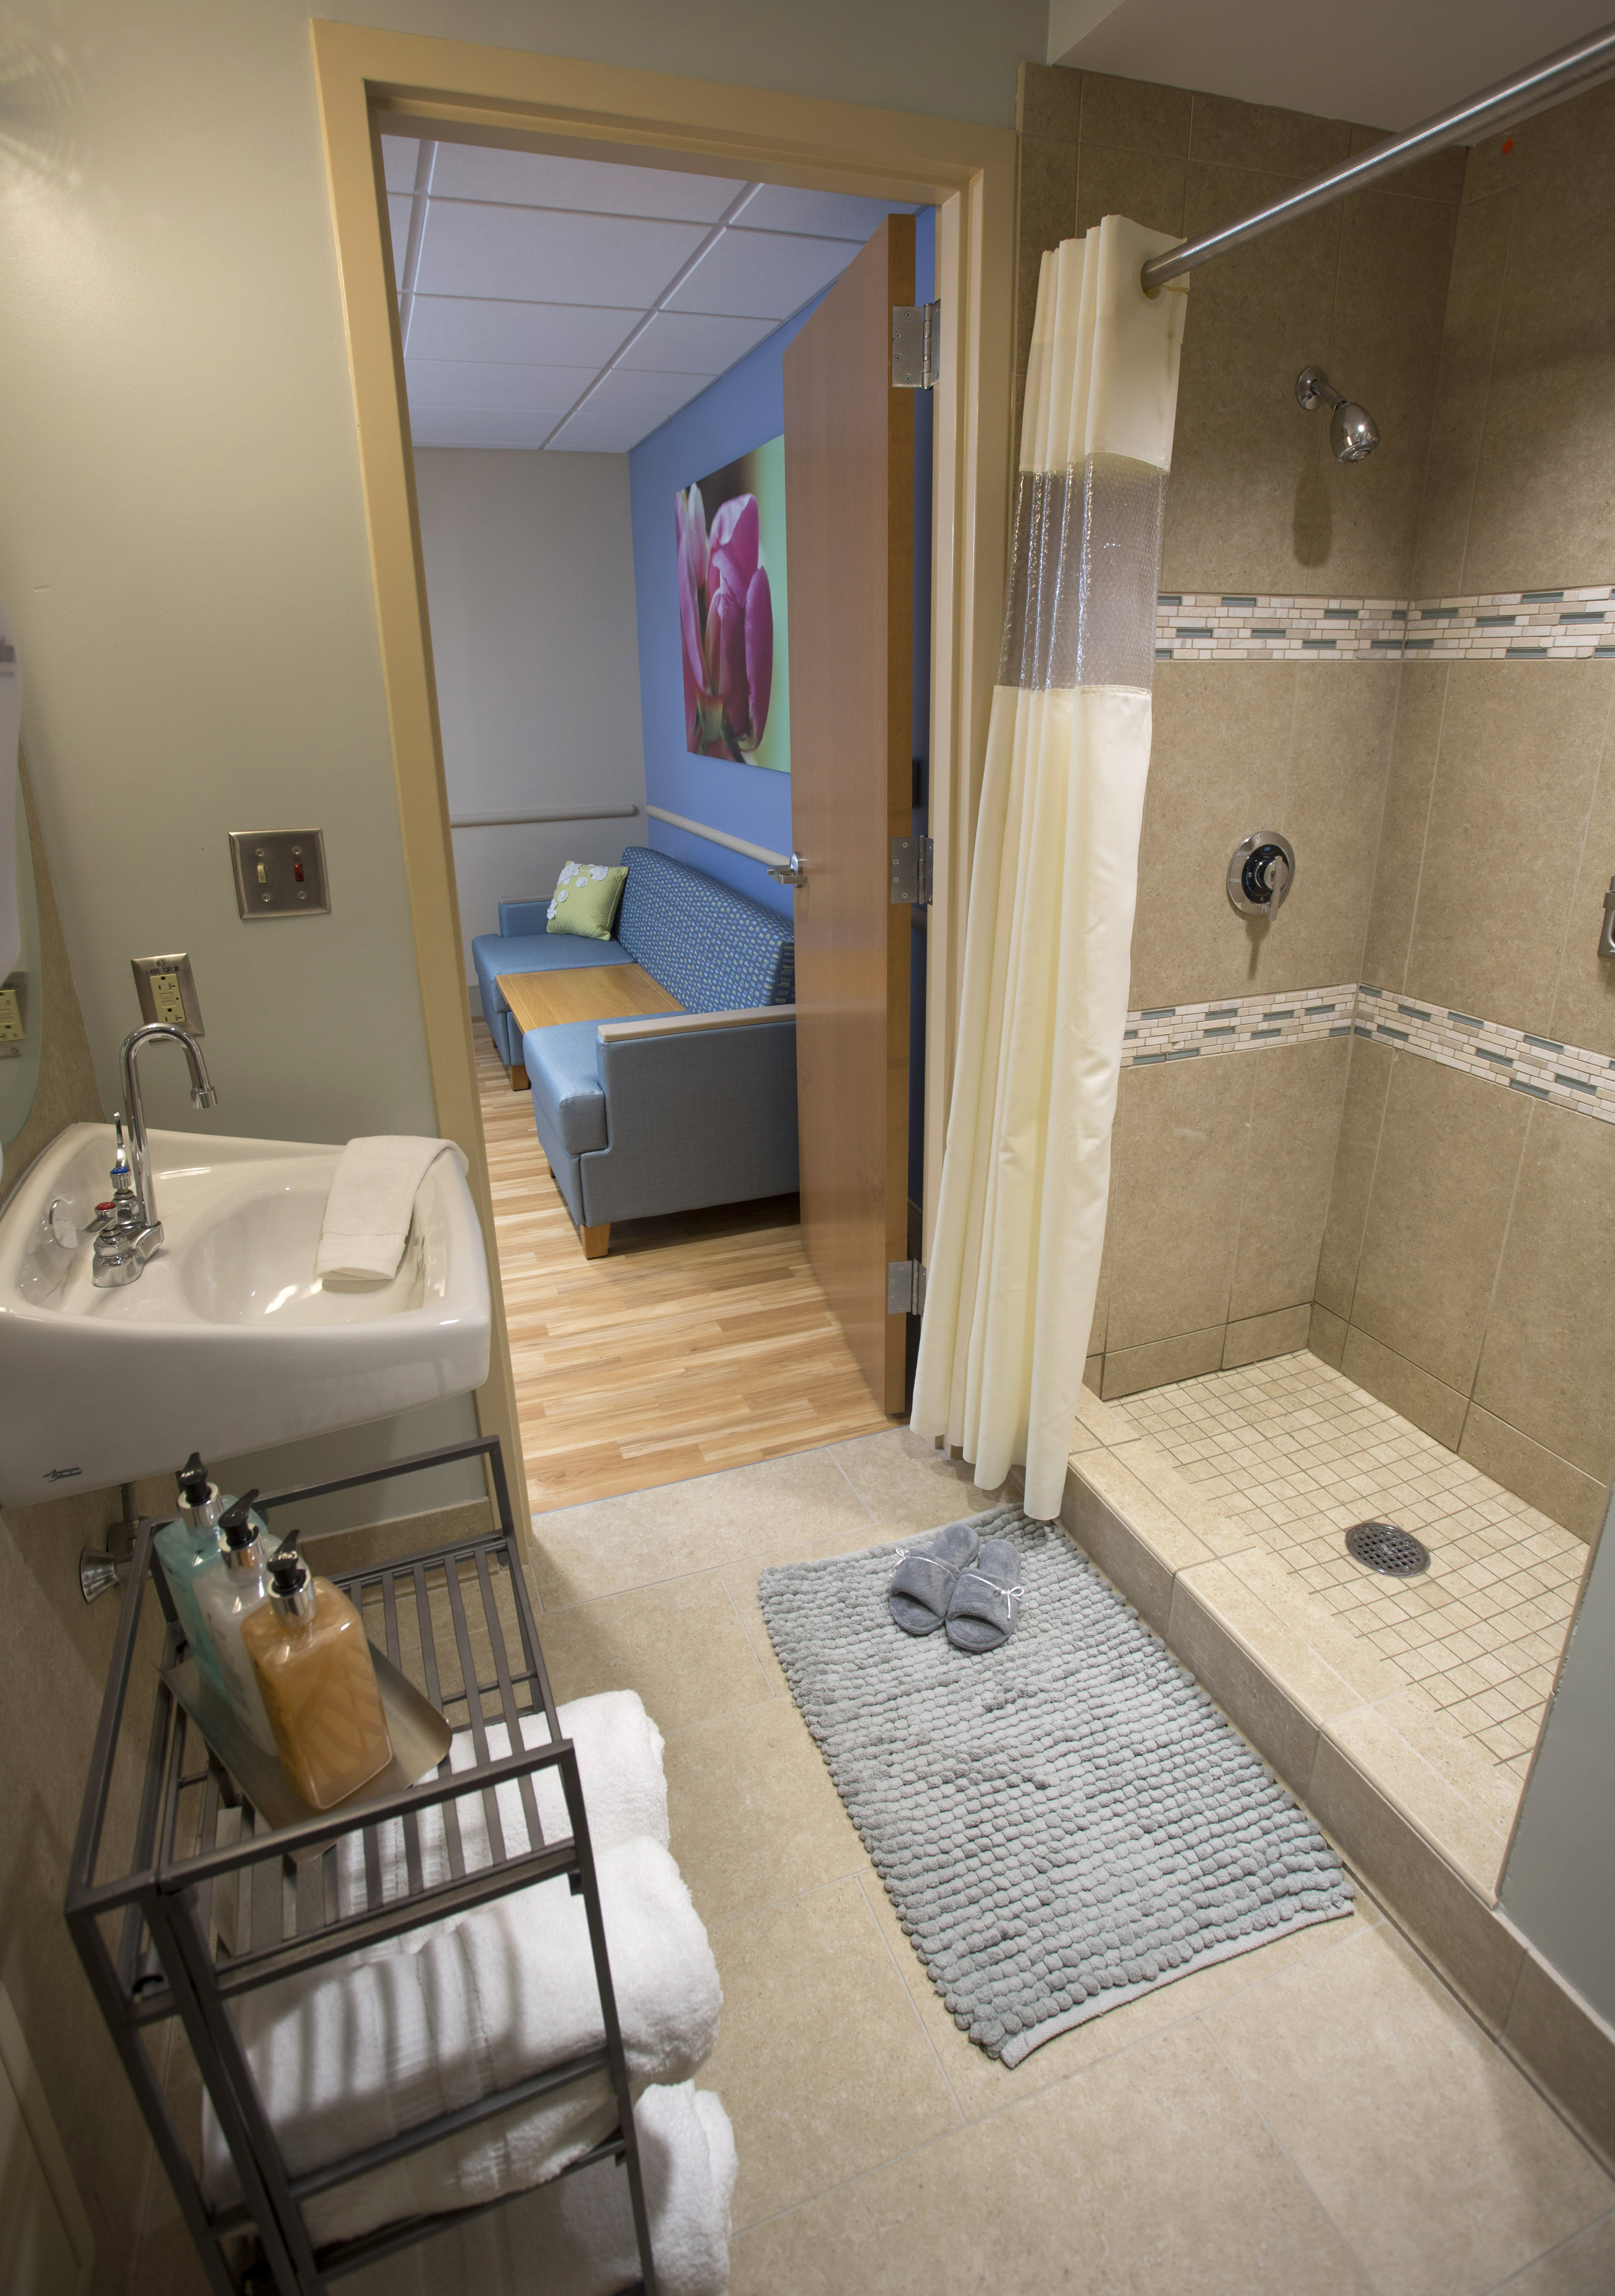 Bathroom at The Family Birth Center